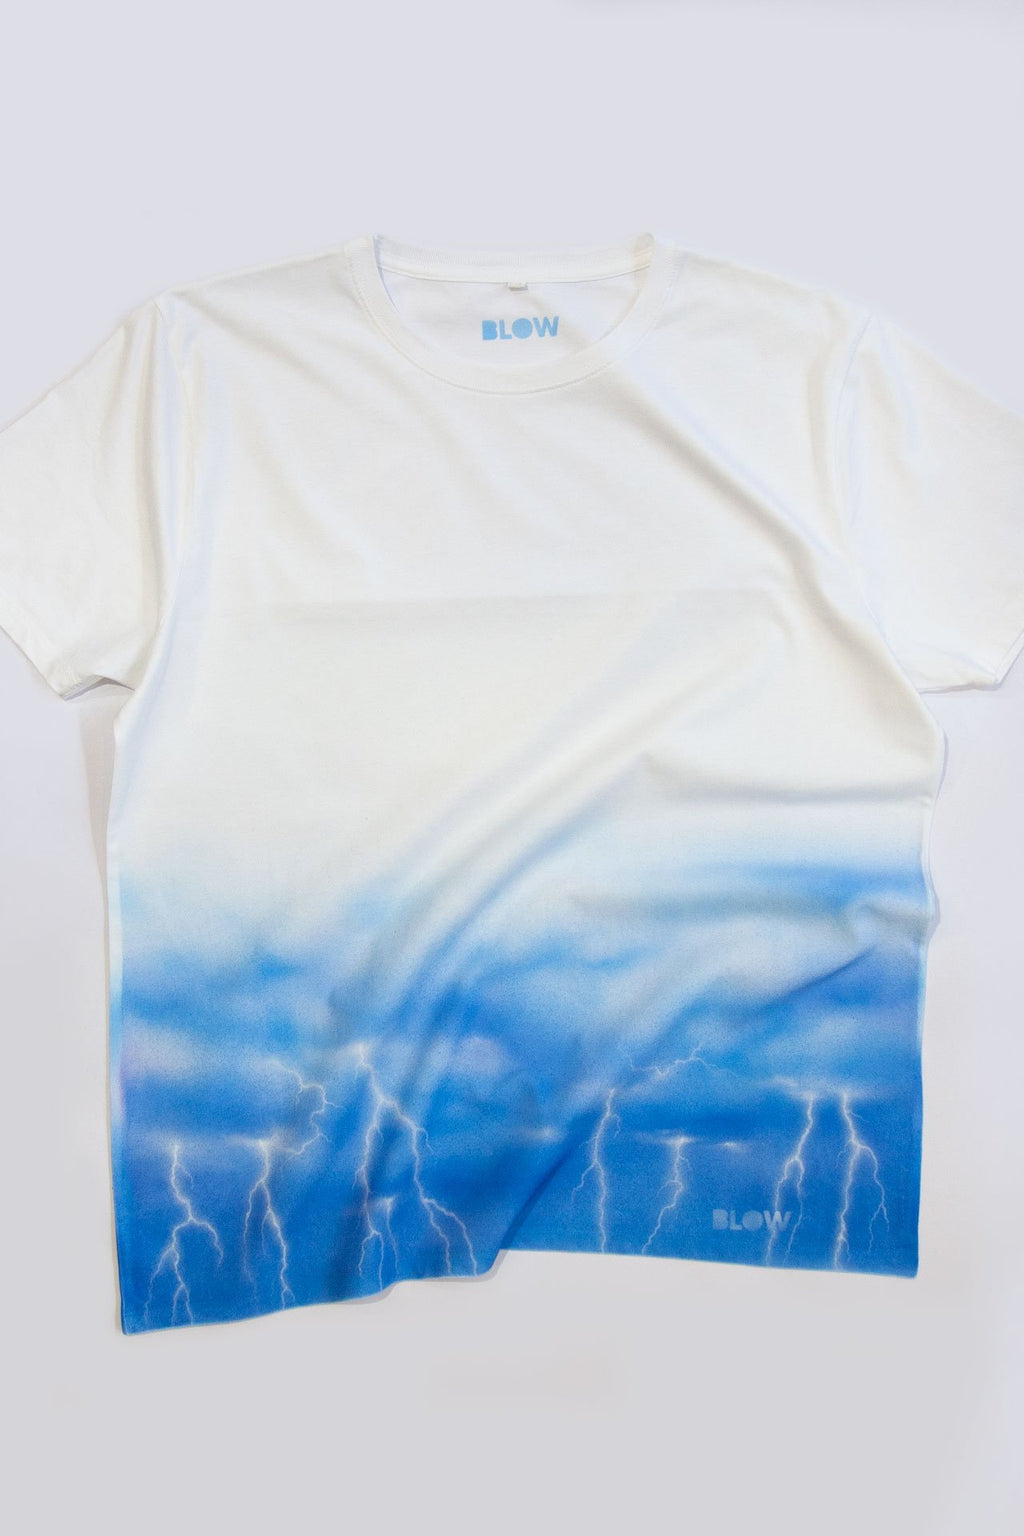 ELECTRIC STORM (White) - Unisex premium short sleeve t-shirt